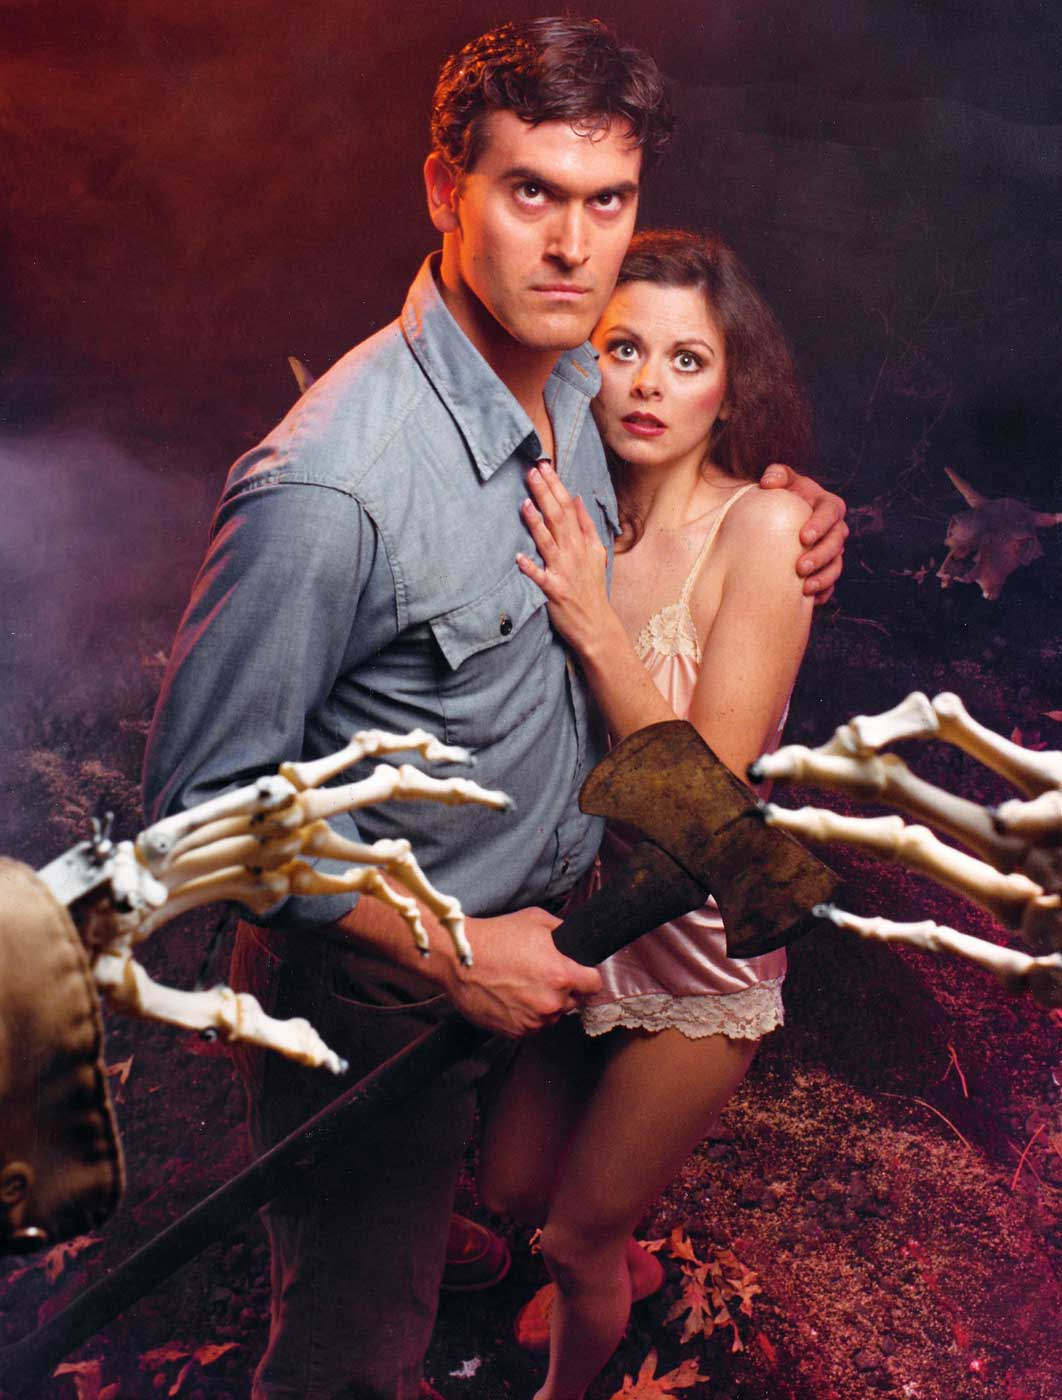 Bruce Campbell and Theresa Tilly in the 1981 film The Evil Dead